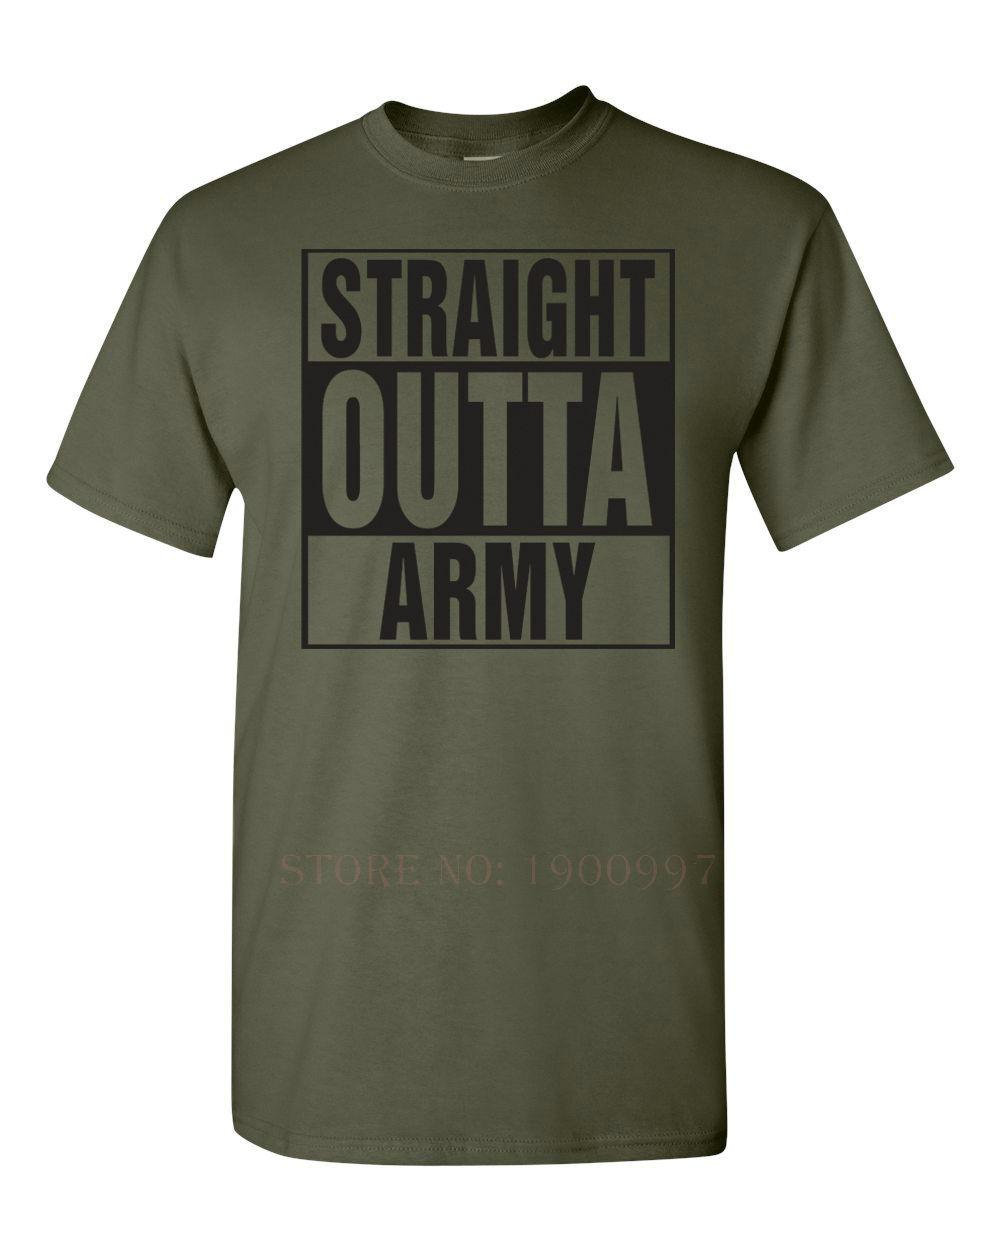 Straight Outta The ARMY T-shirt da uomo militare degli Stati Uniti 1305